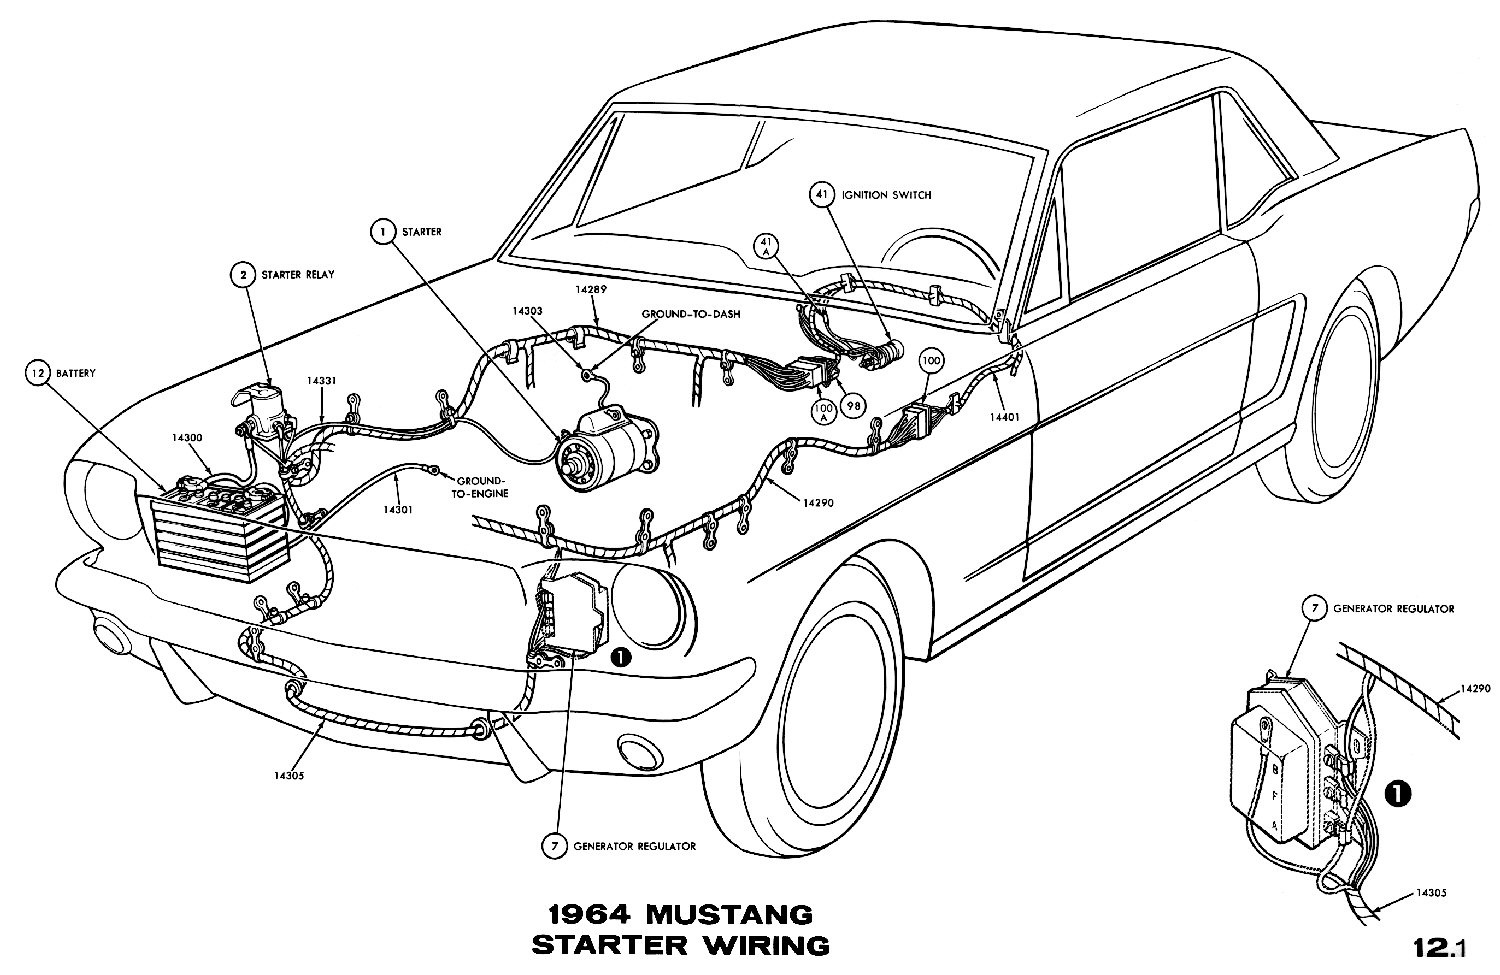 1964 Mustang Wiring Diagrams Average Joe Restoration 2007 Ignition Switch Diagram Sm1964d Starter Pictorial Or Schematic